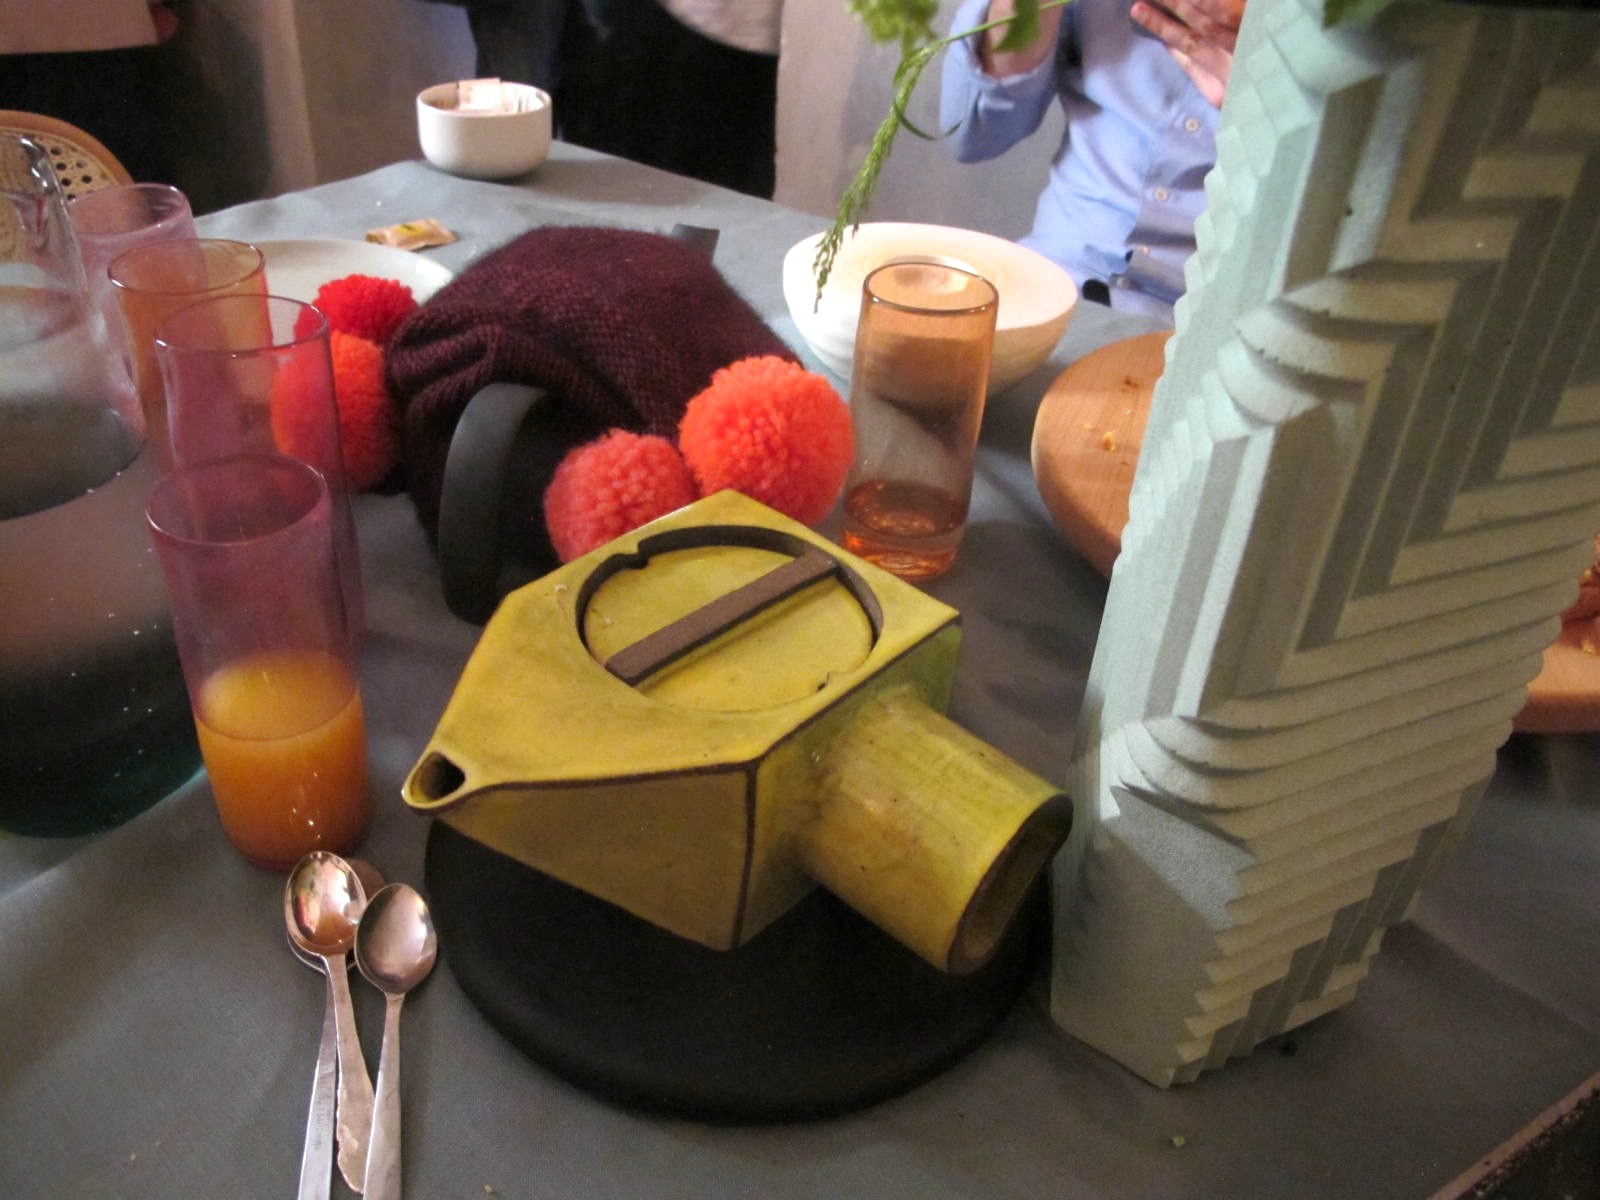 Joobel Thom's ceramic teapot at Makers + Bakers by Airbnb and Ambra Medda at Ristorante Marta.